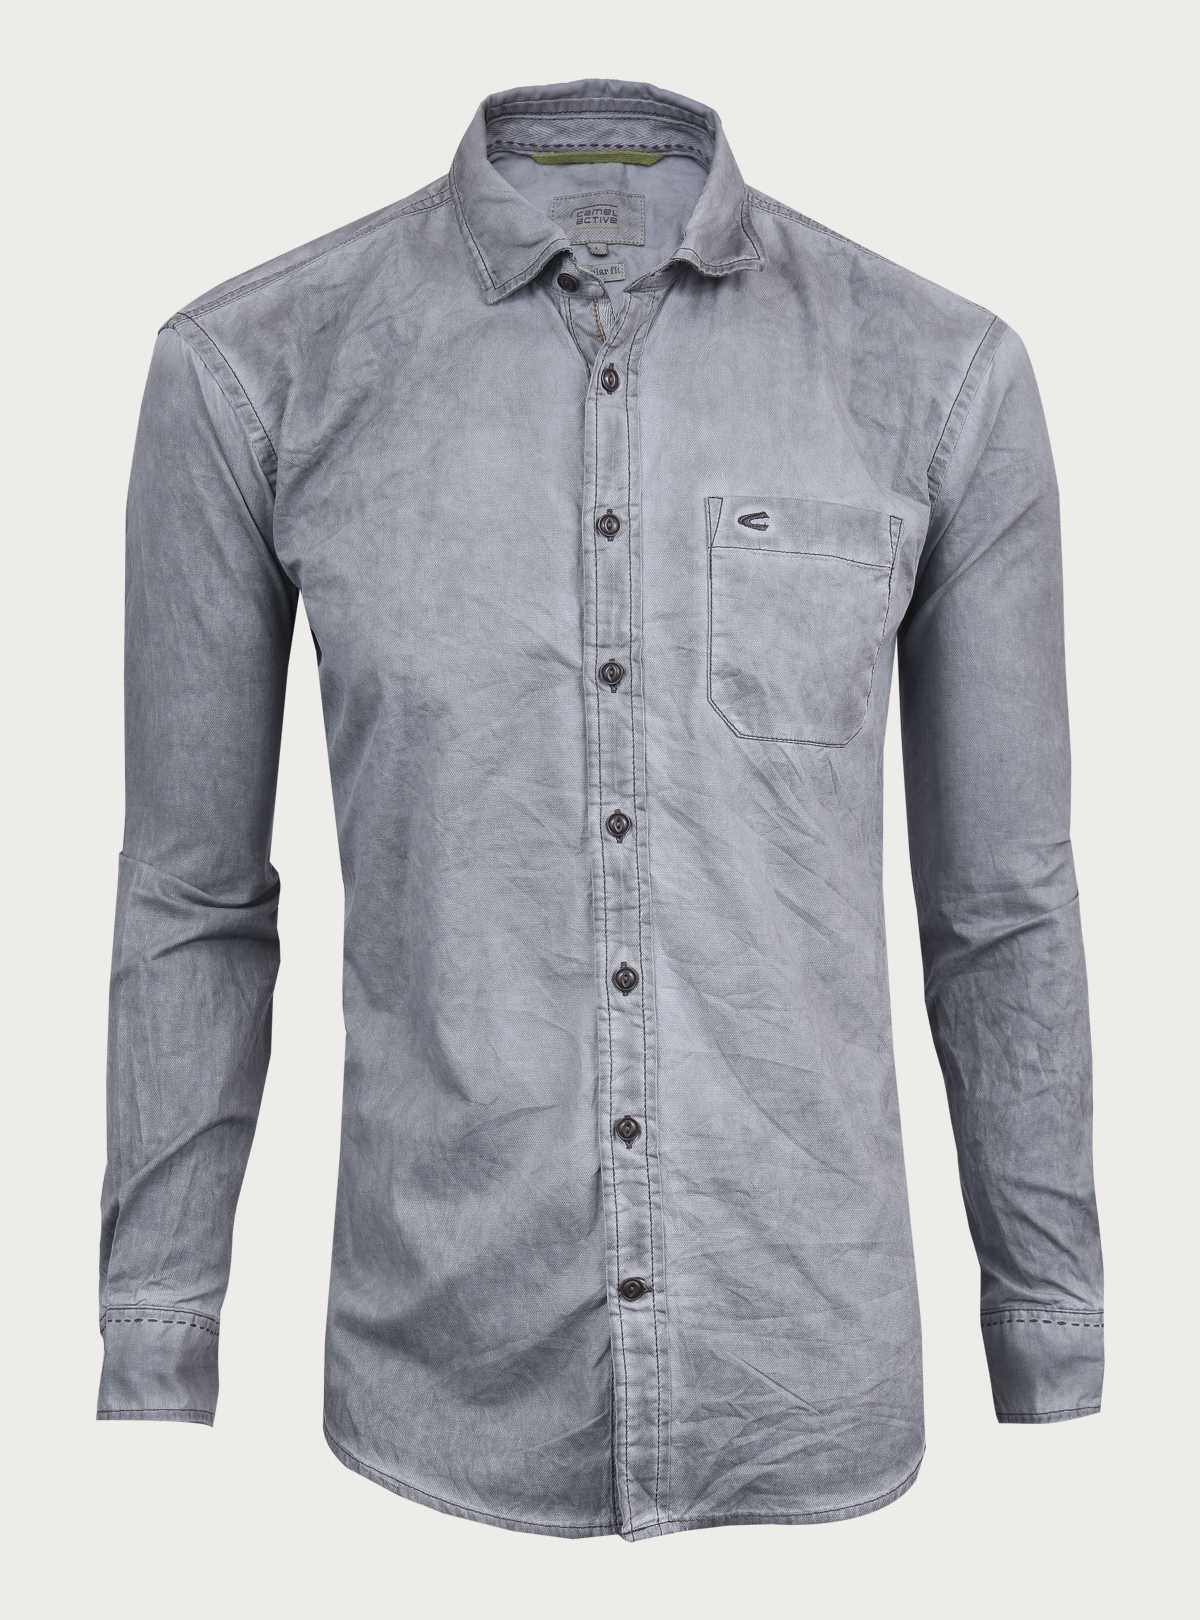 Stylish Casual Shirt By CAMEL